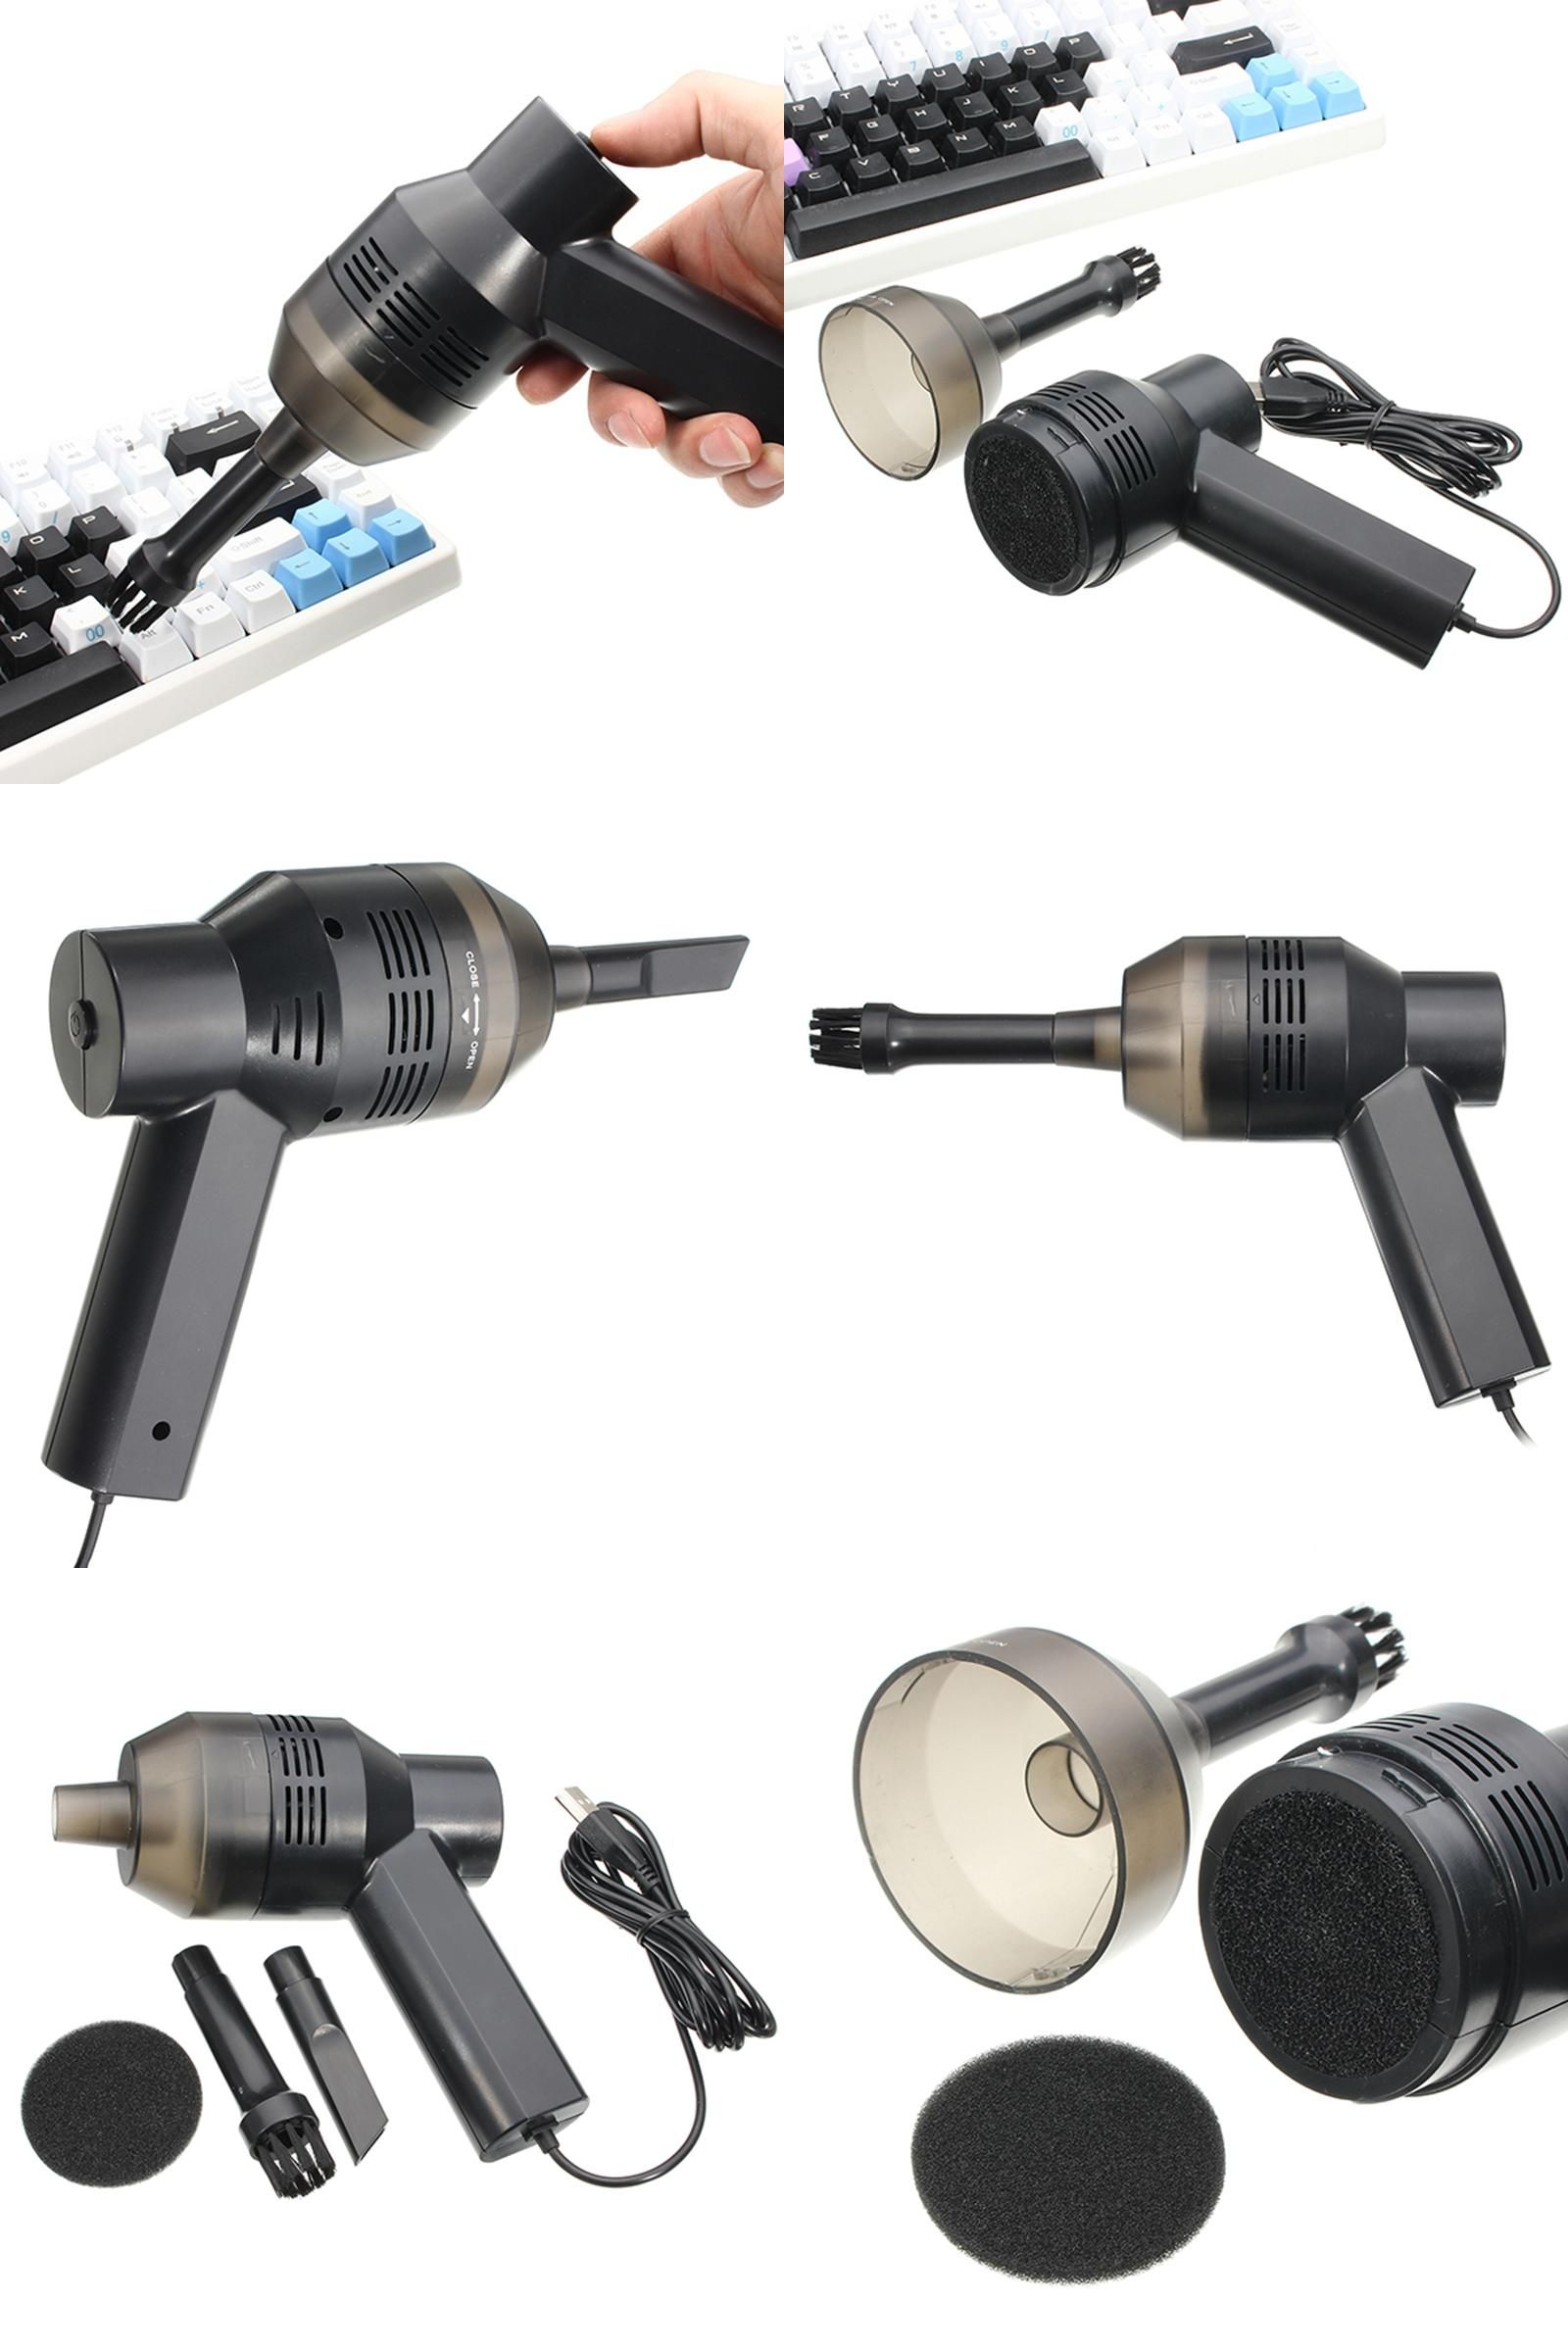 Visit To Buy Mini Usb Vacuum Cleaner Portable Computer Keyboard Brush Nozzle Dust Collector